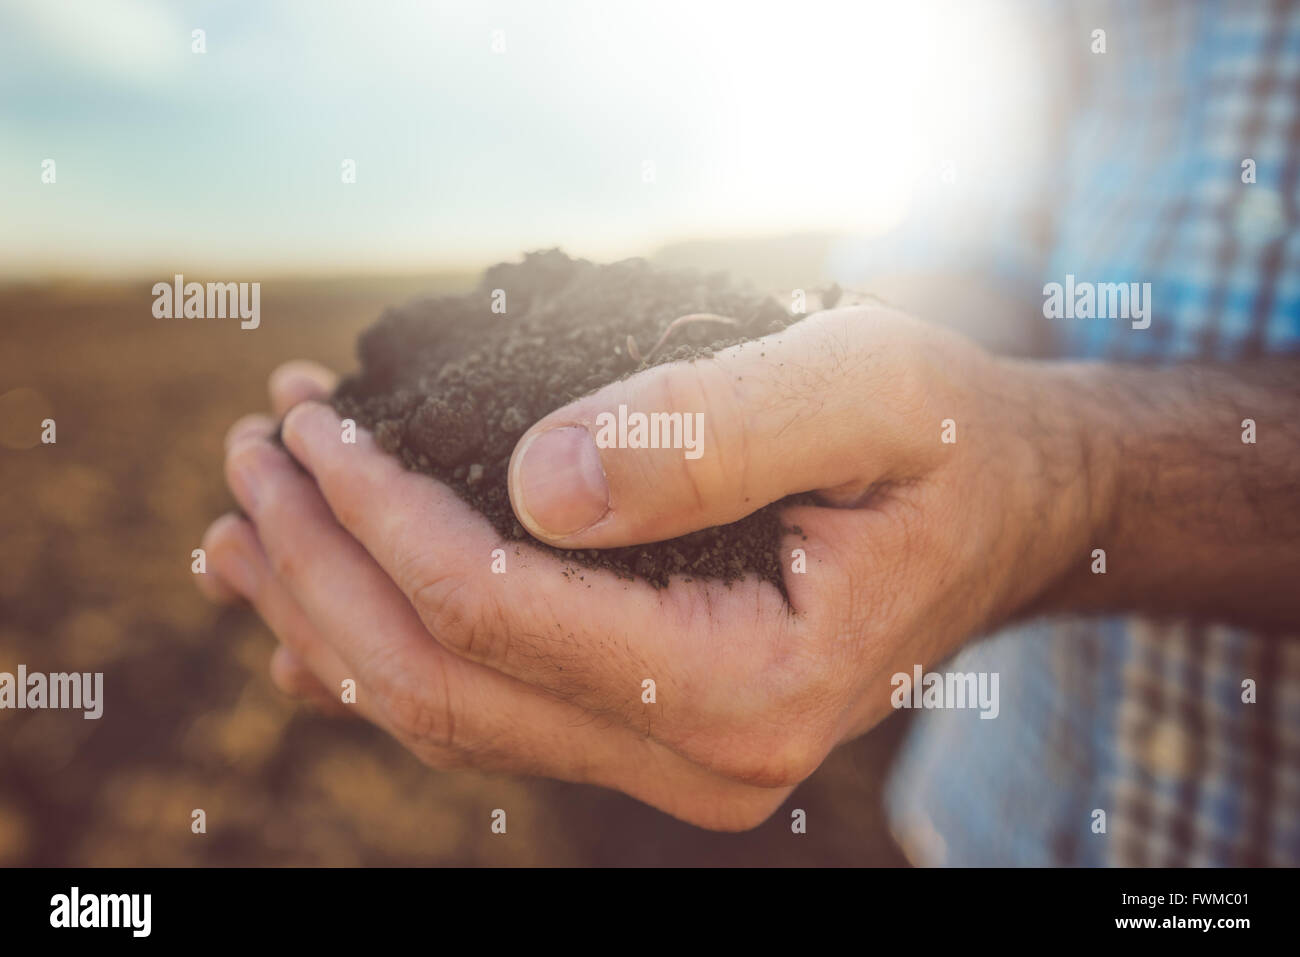 Farmer holding pile of arable soil, male agronomist examining quality of fertile agricultural land, close up - Stock Image